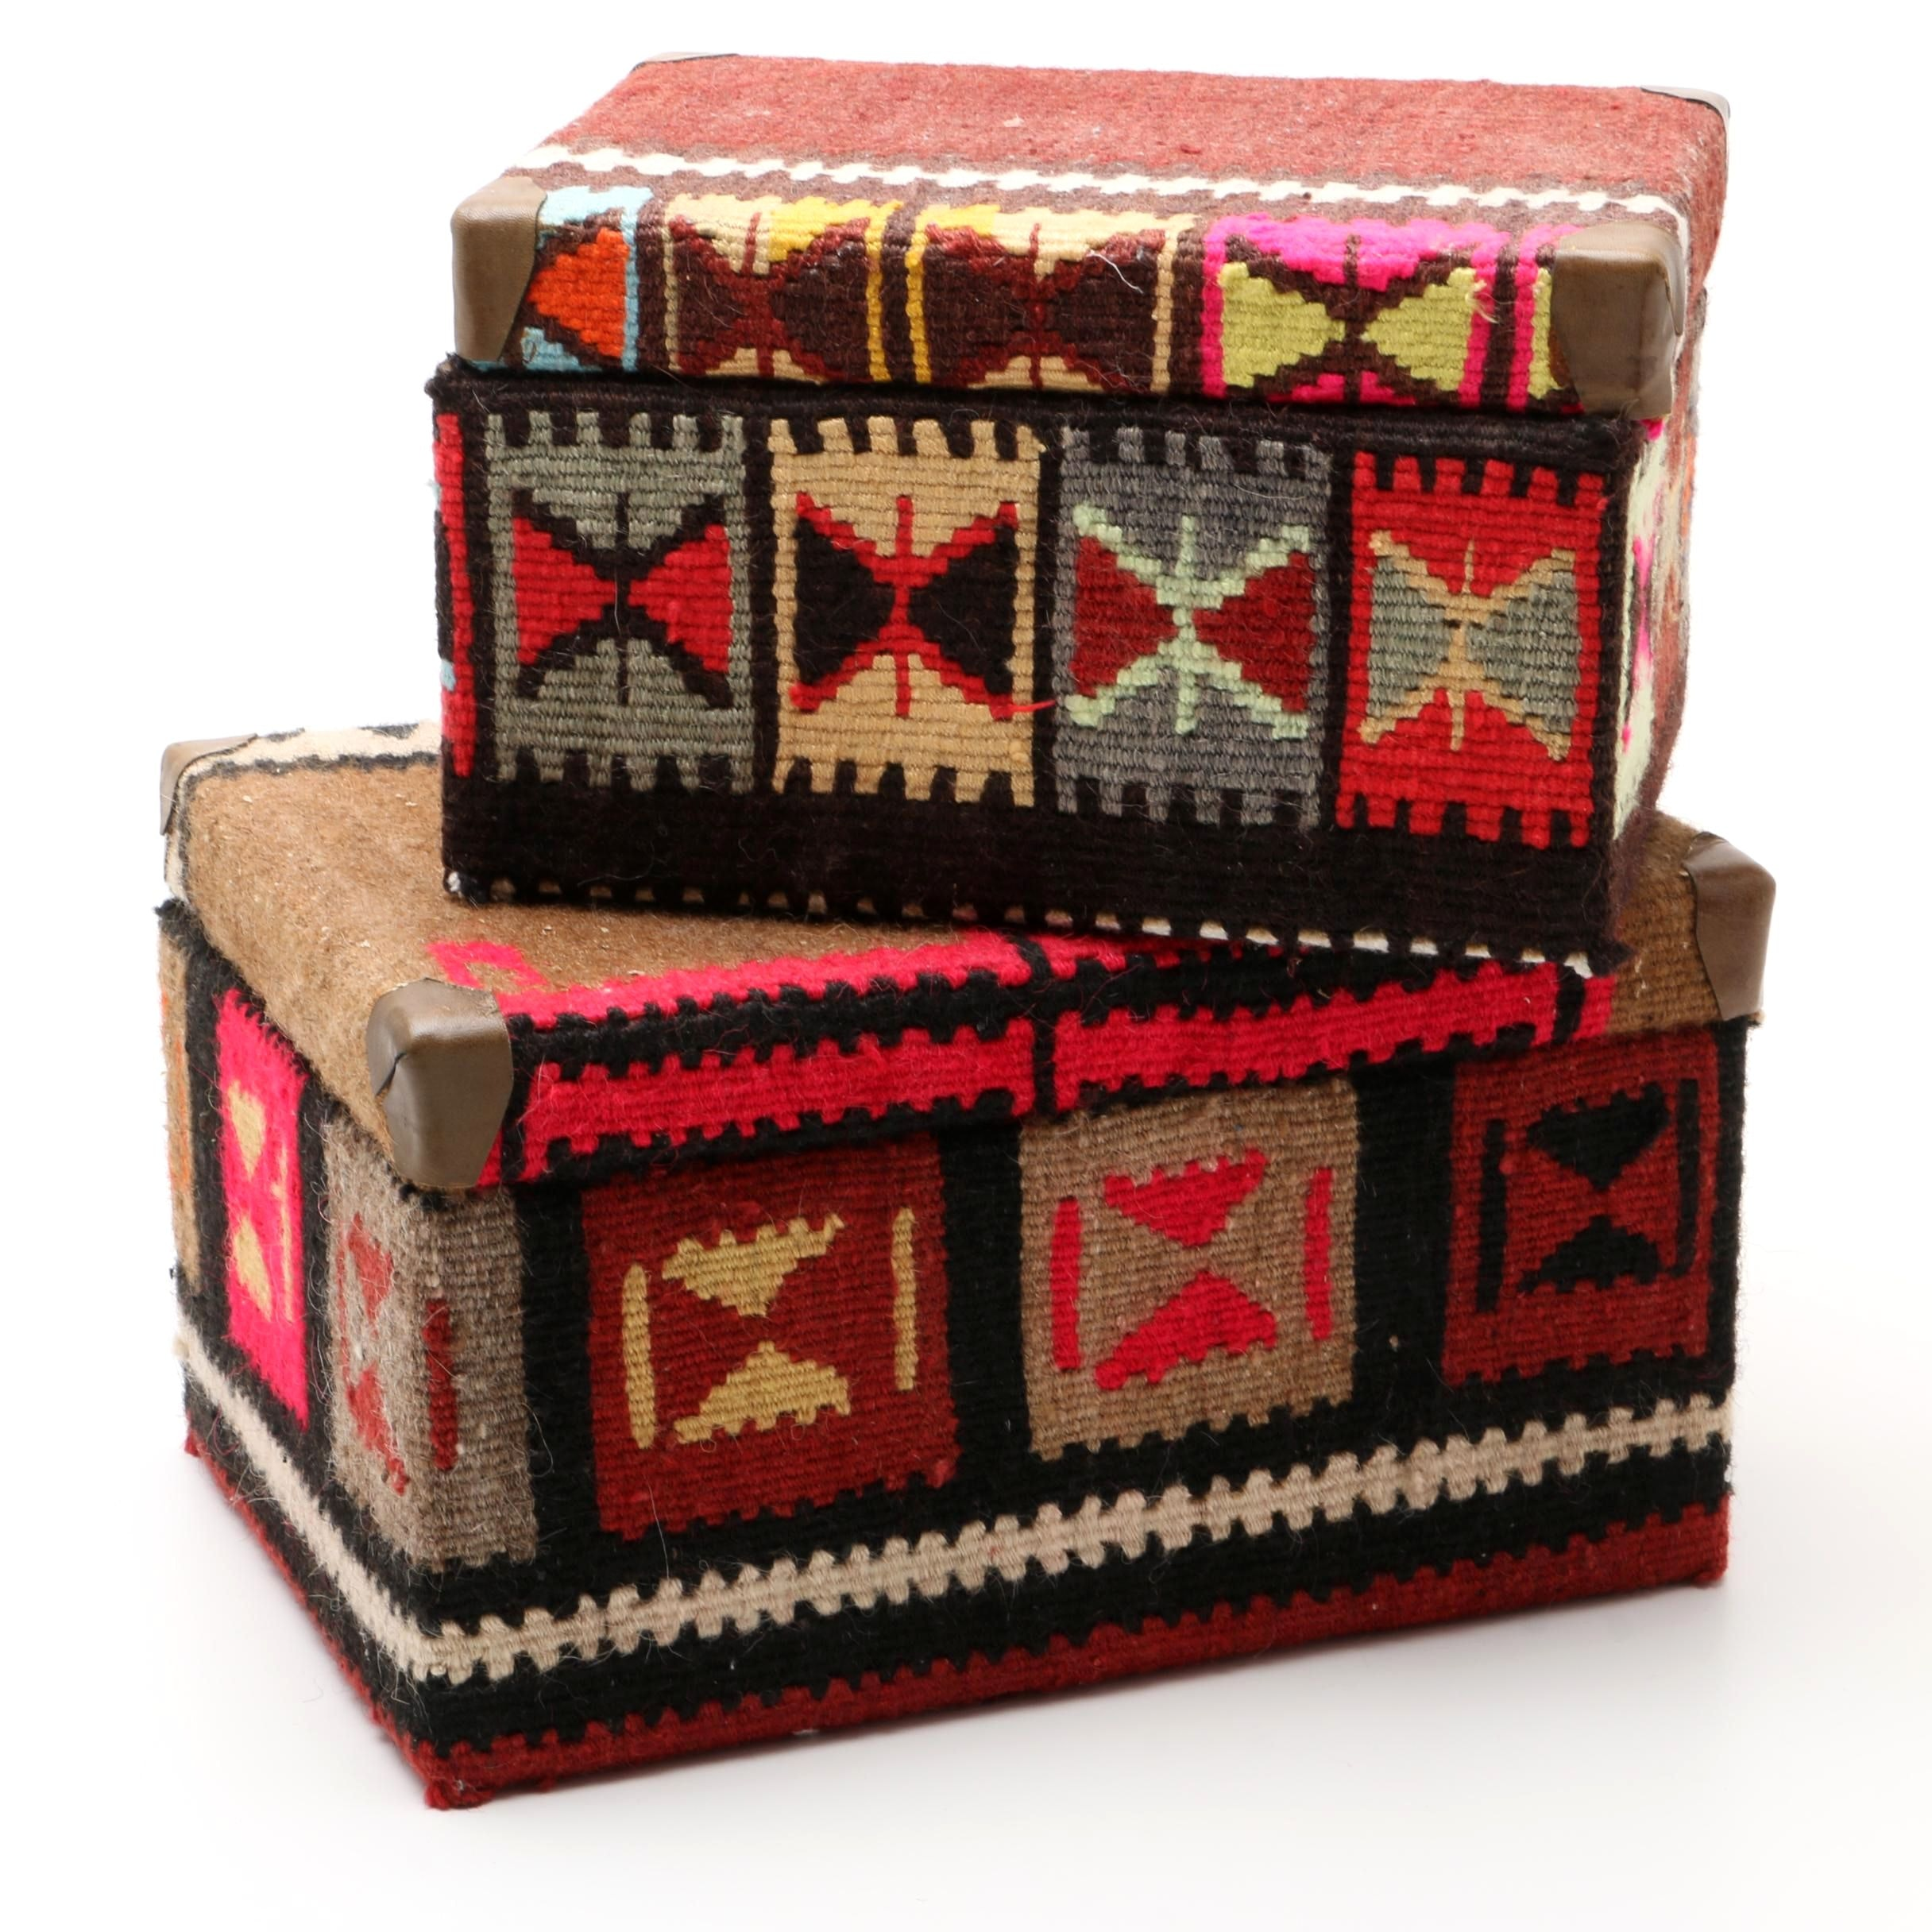 Handwoven Kilim Wrapped Boxes